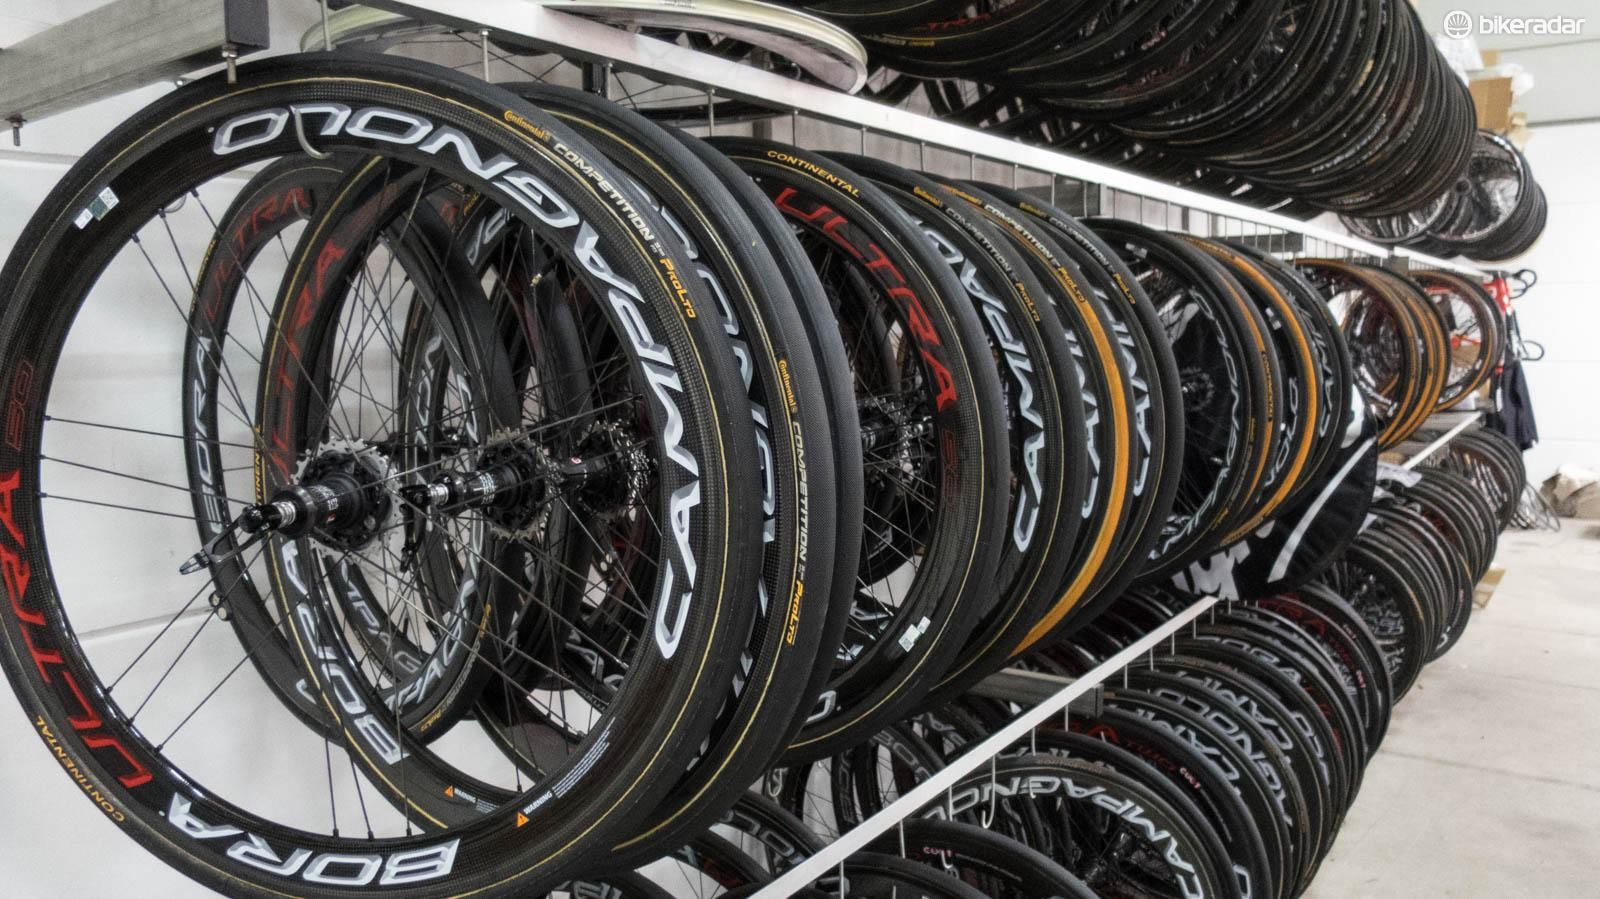 With so many road wheel choices on the market, often even within the same brand, where do you begin? Our buyer's guide is here to help